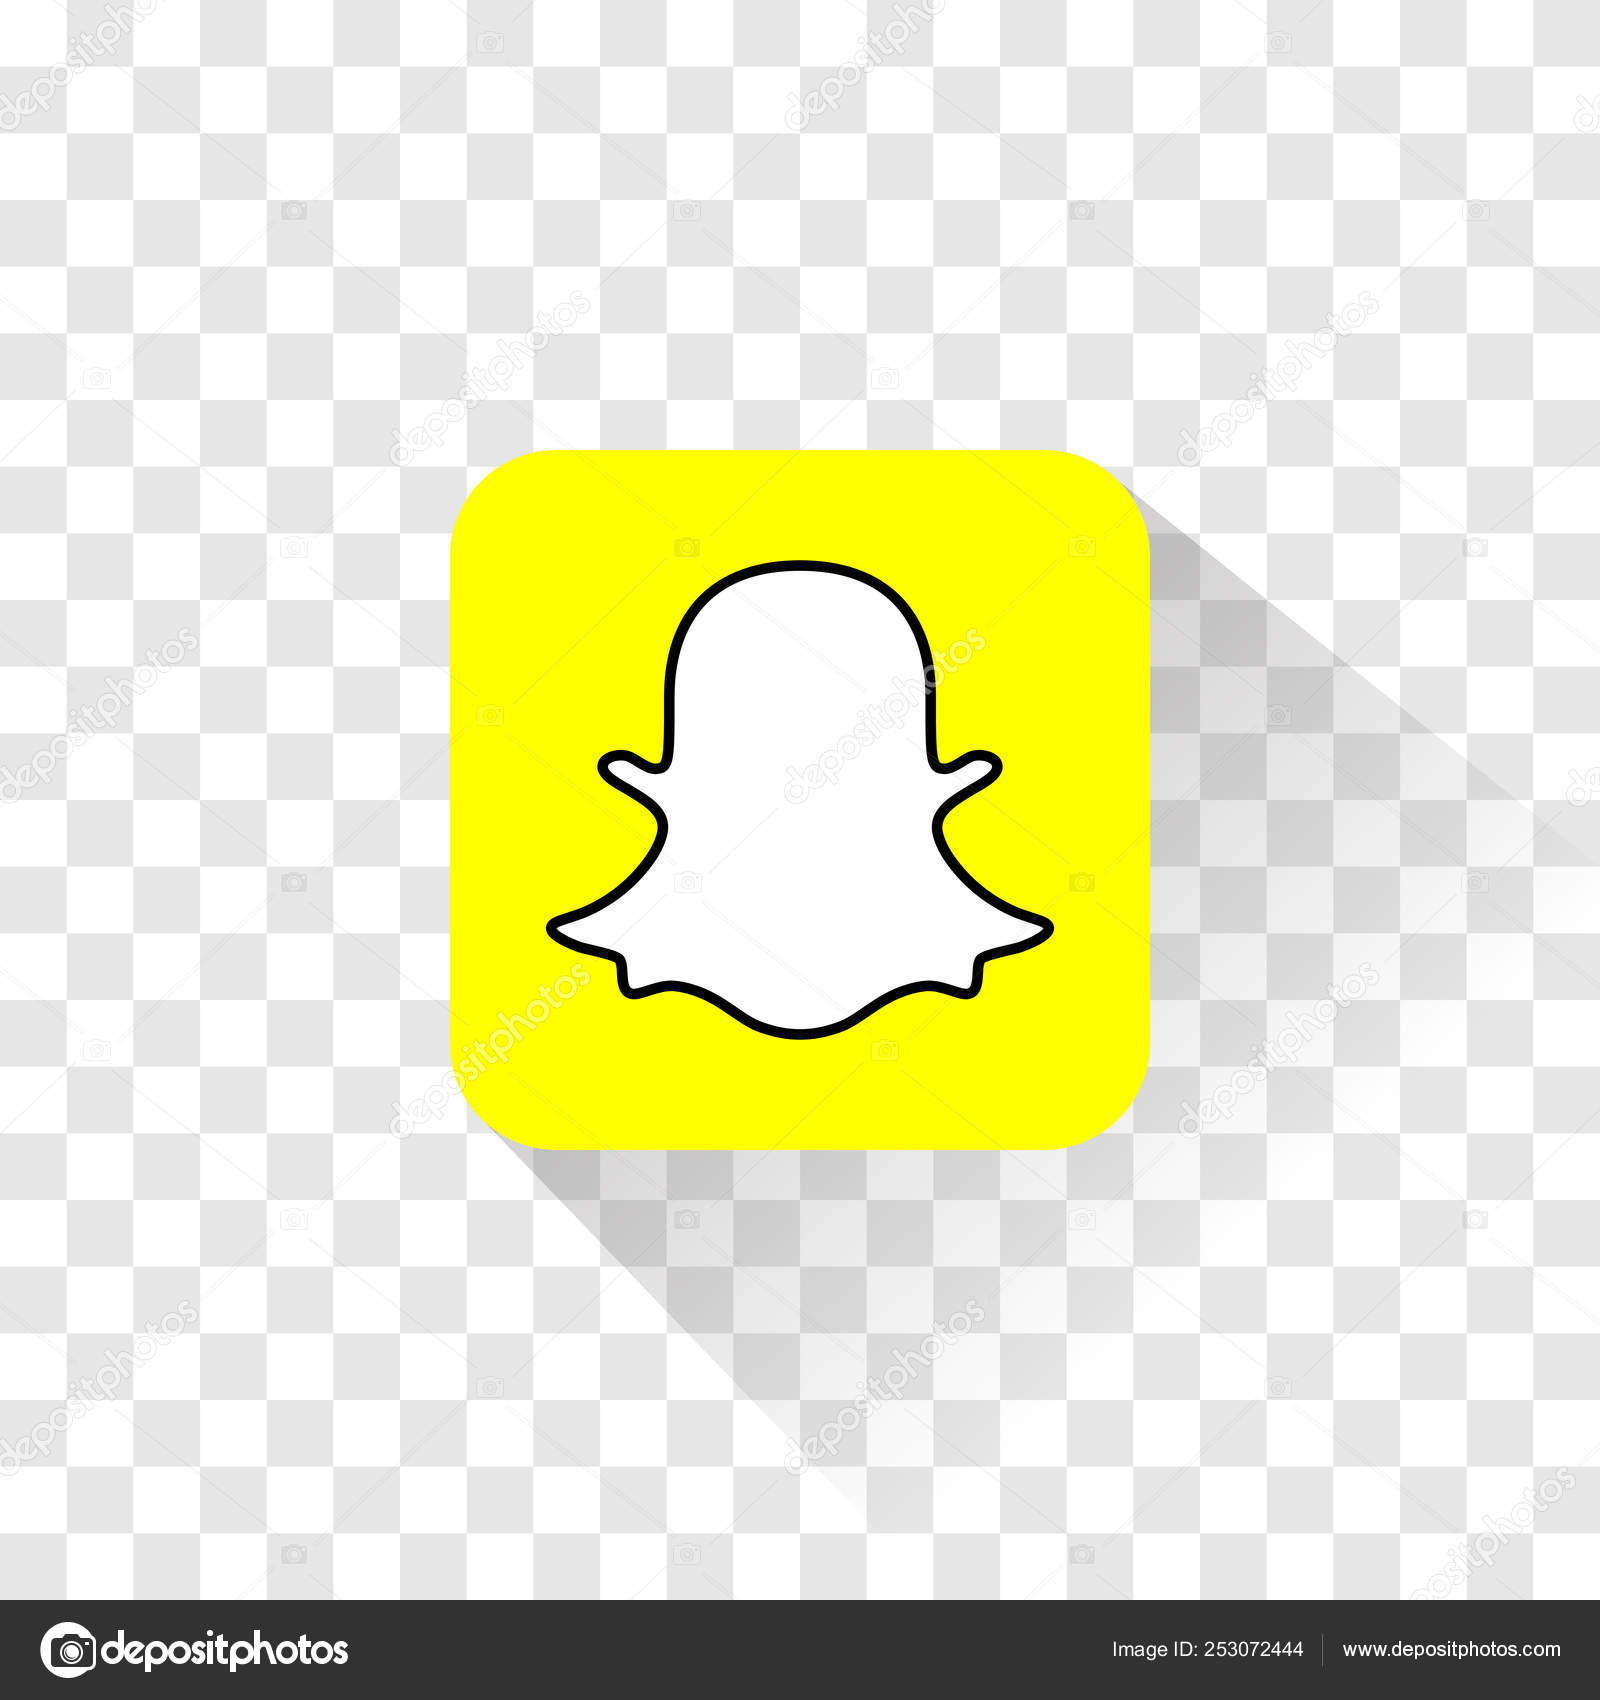 Isolated Snapchat logo  Vector illustration  Snapchat icon